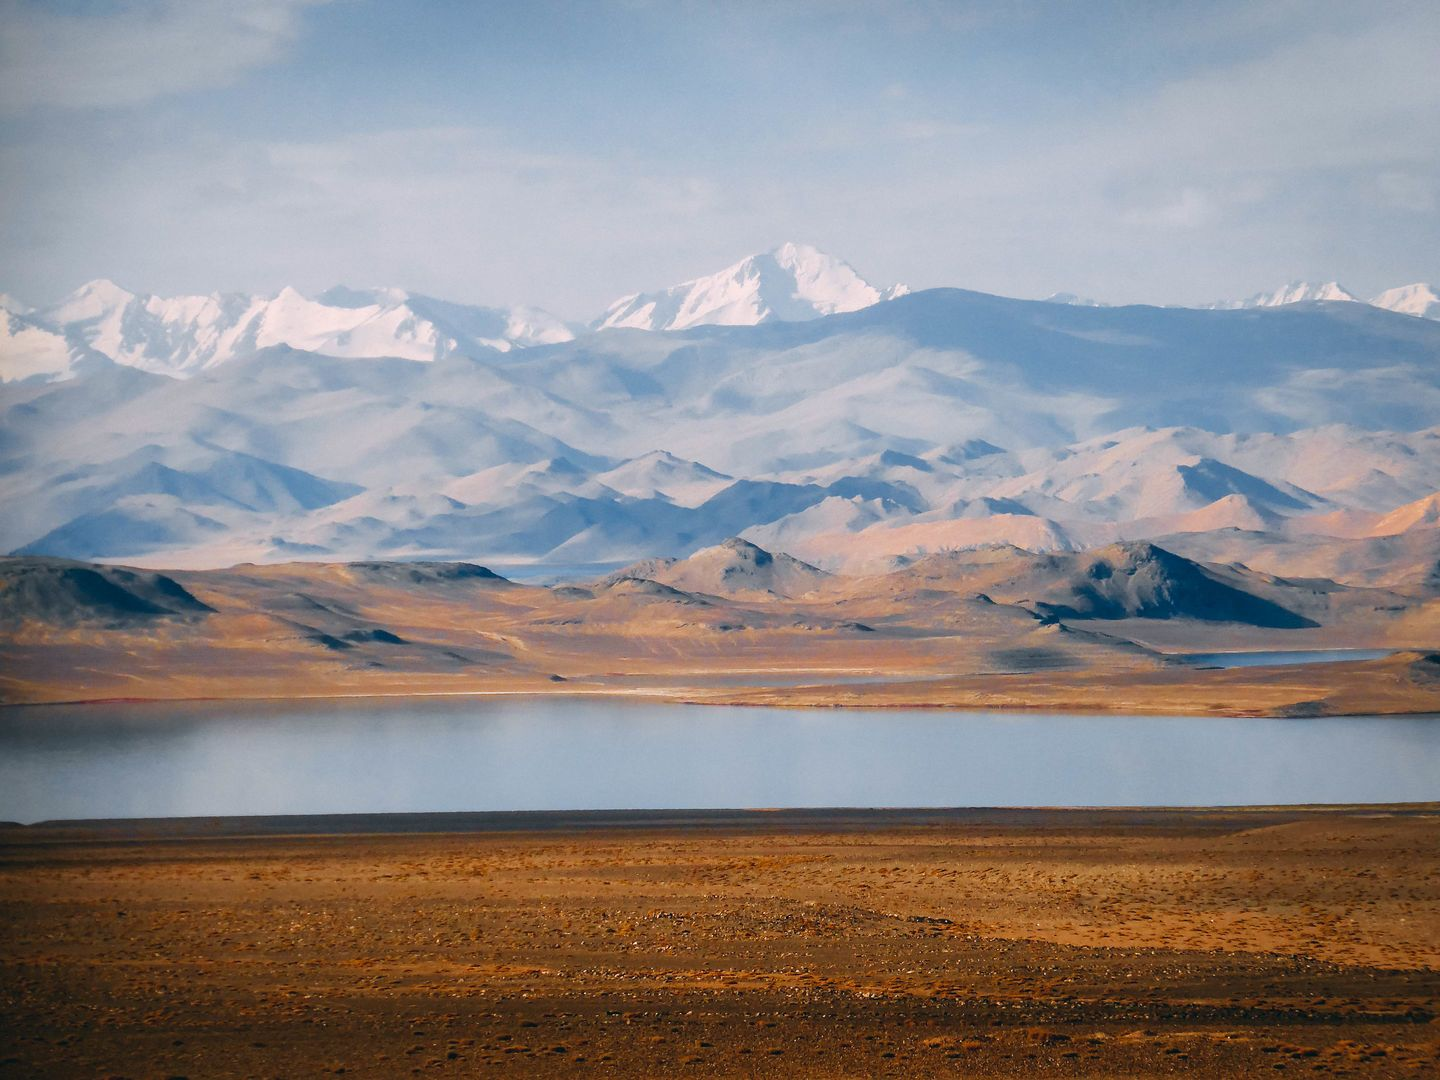 Karakul Lake, Tajikistan, Pamir Mountains